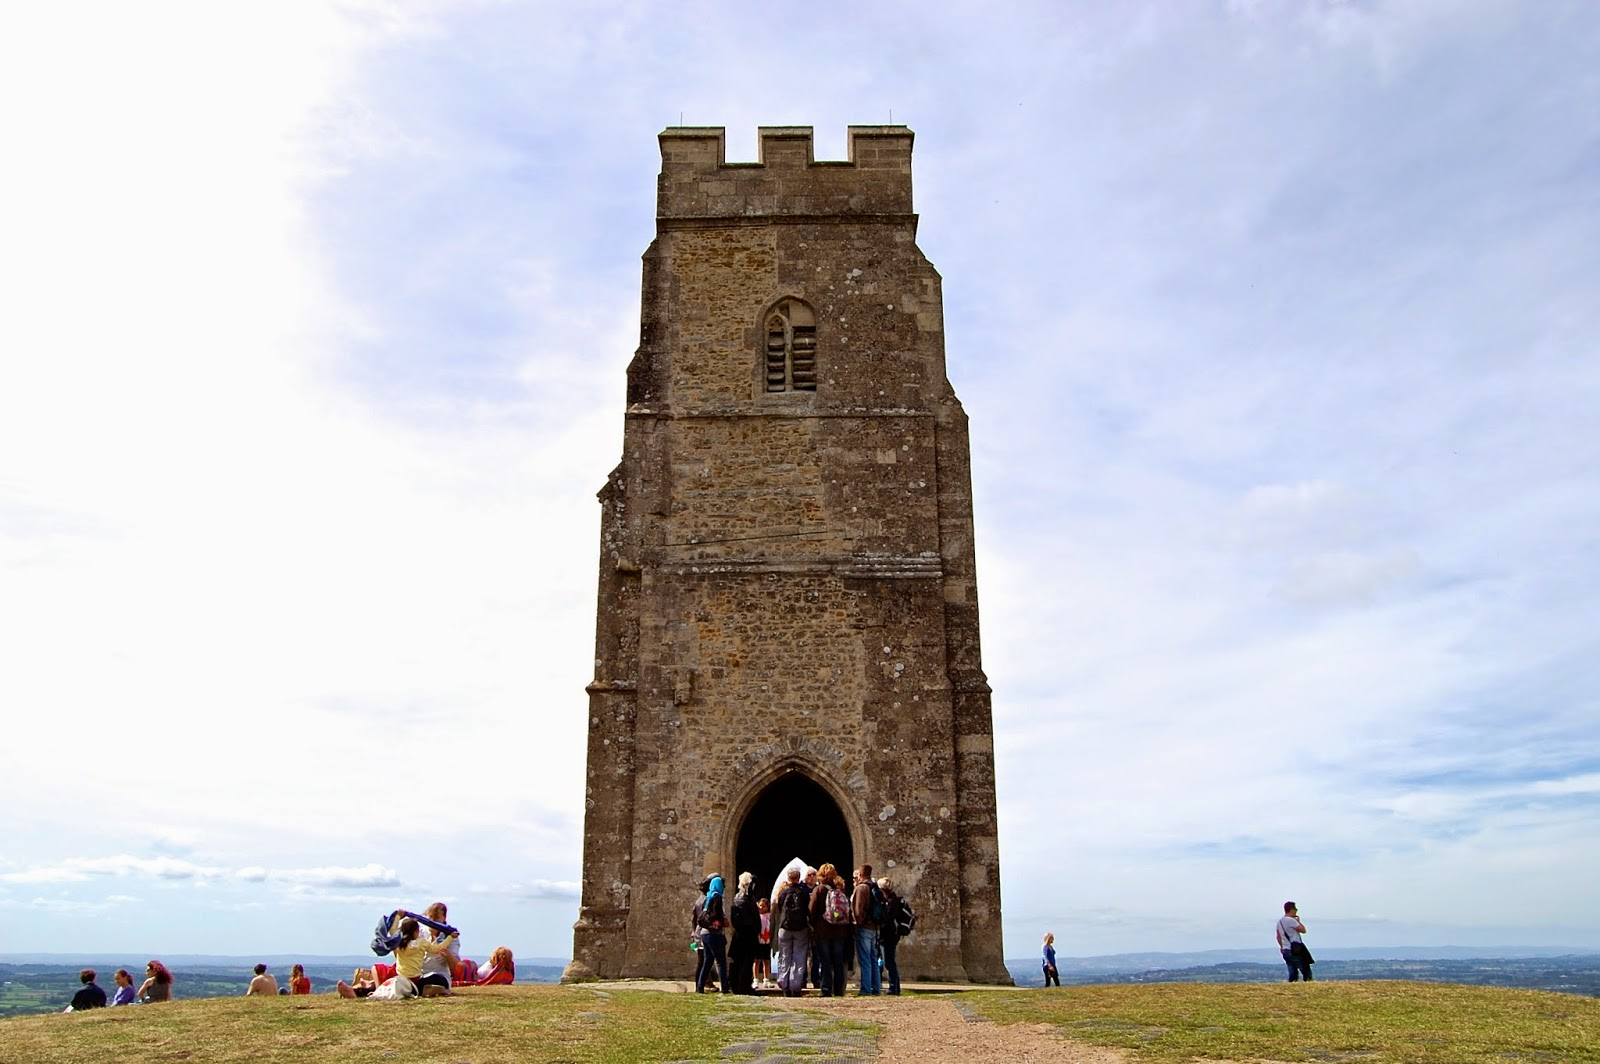 Tower from St. Michael's Church on Glastonbury Tor